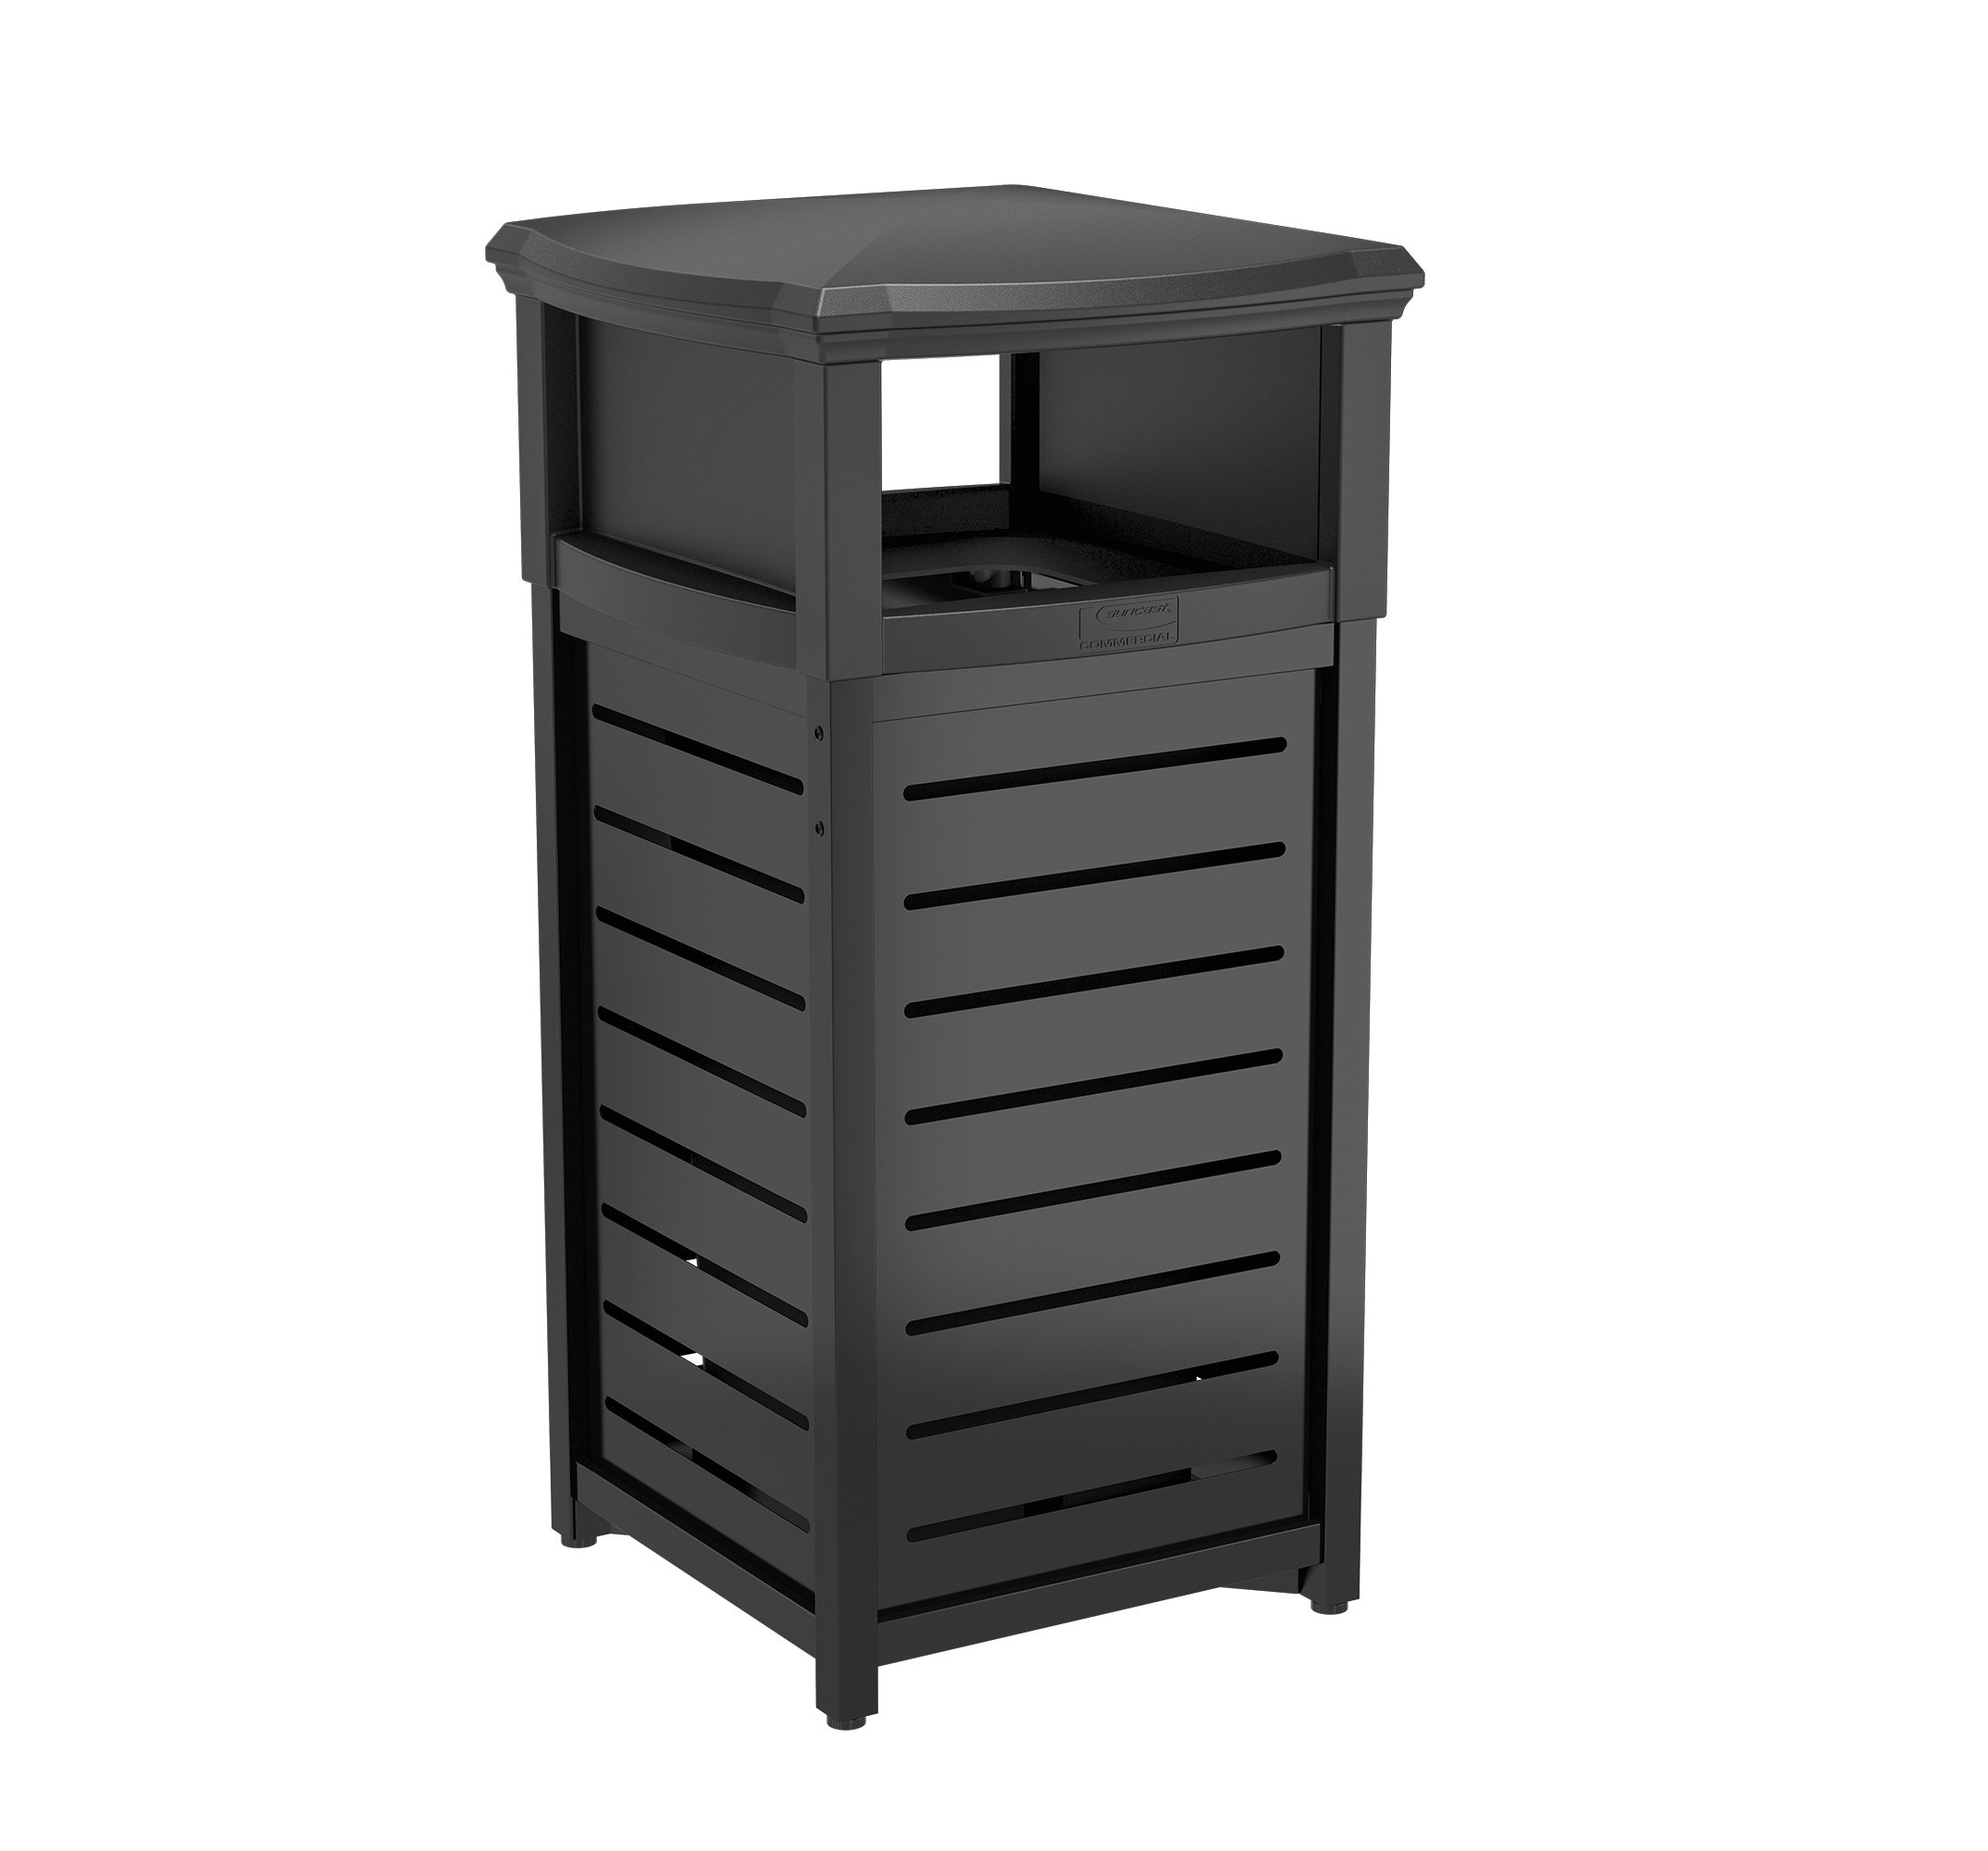 Suncast Commercial MTCSQ300 Metal Outdoor Trash Can with 2-Way Lid, 30 gal, 47.76'' Height, 24.41'' Width